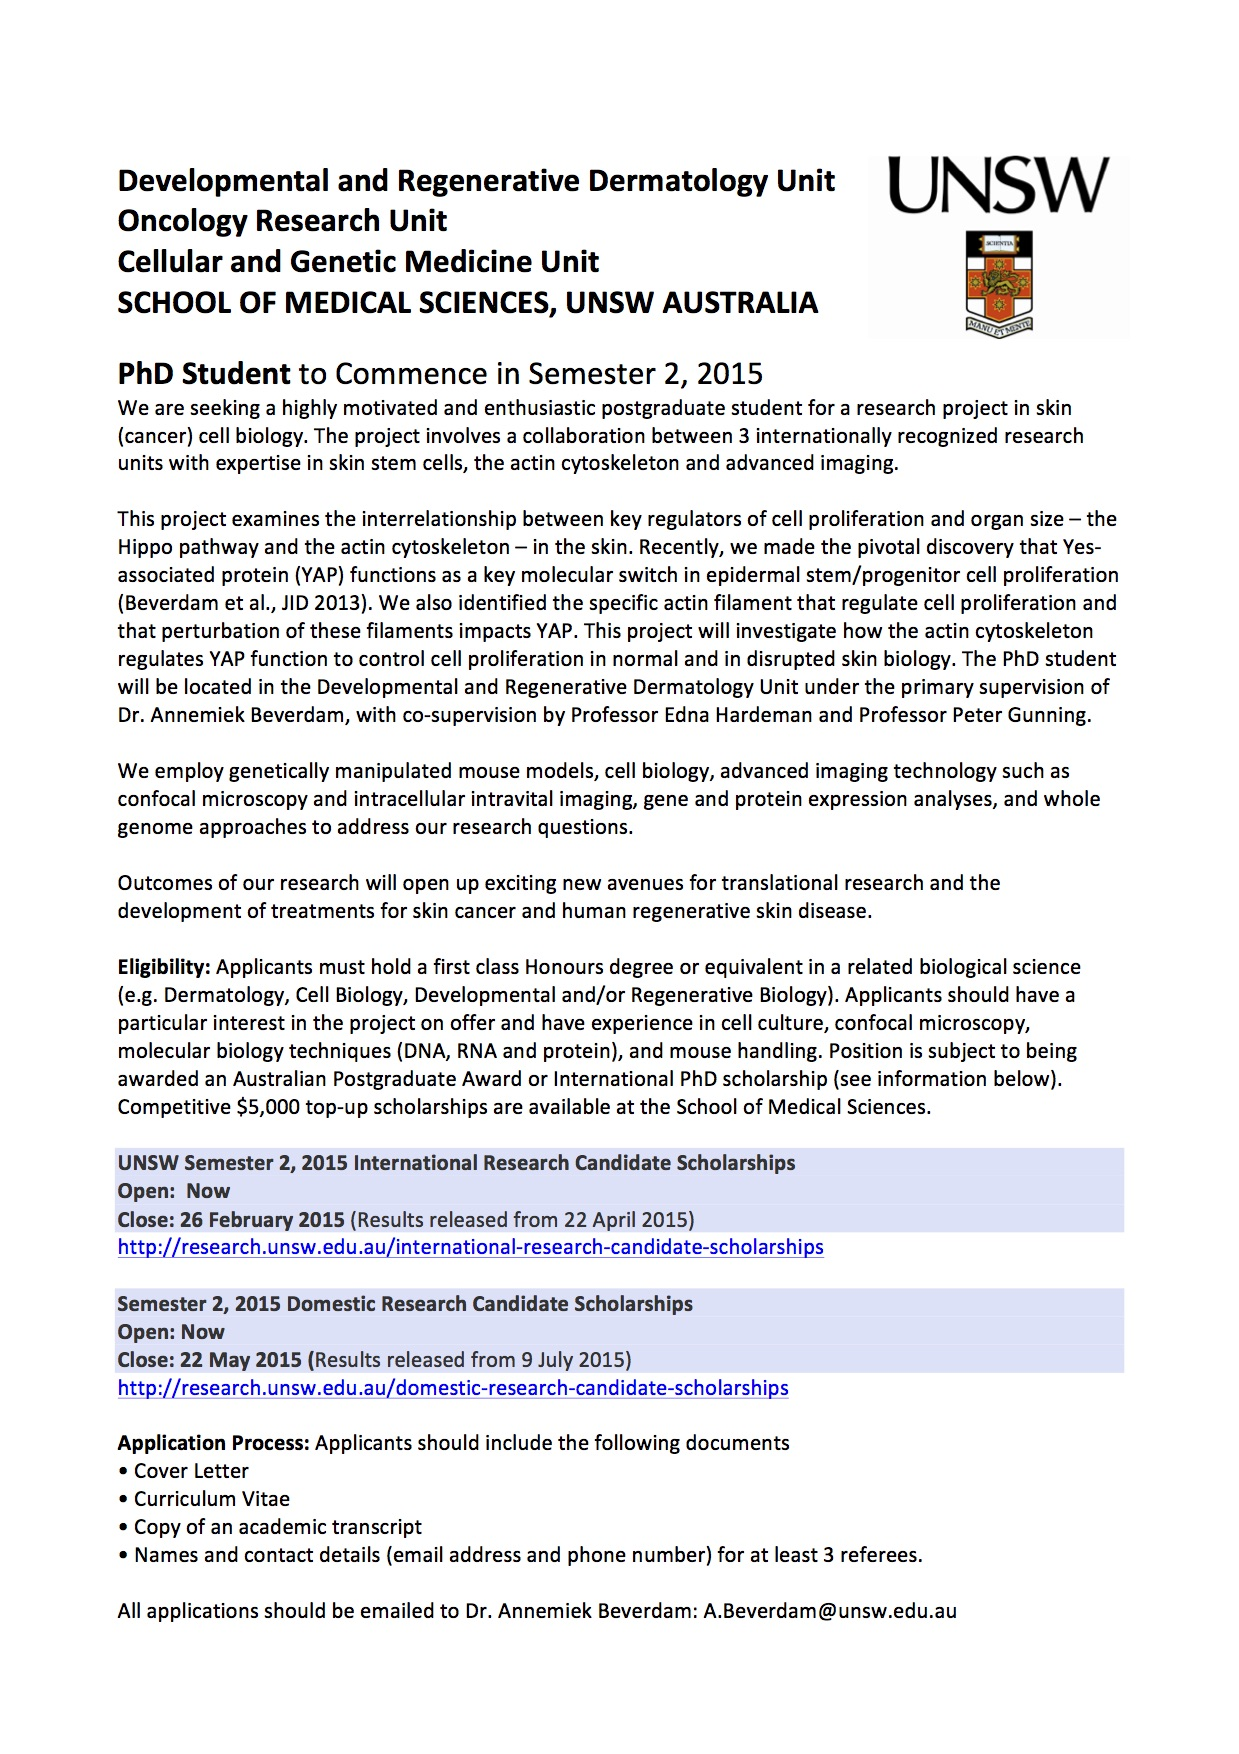 Unsw Cover Letter Looking For Phd Student To Investigate How Actin Regulates Yap